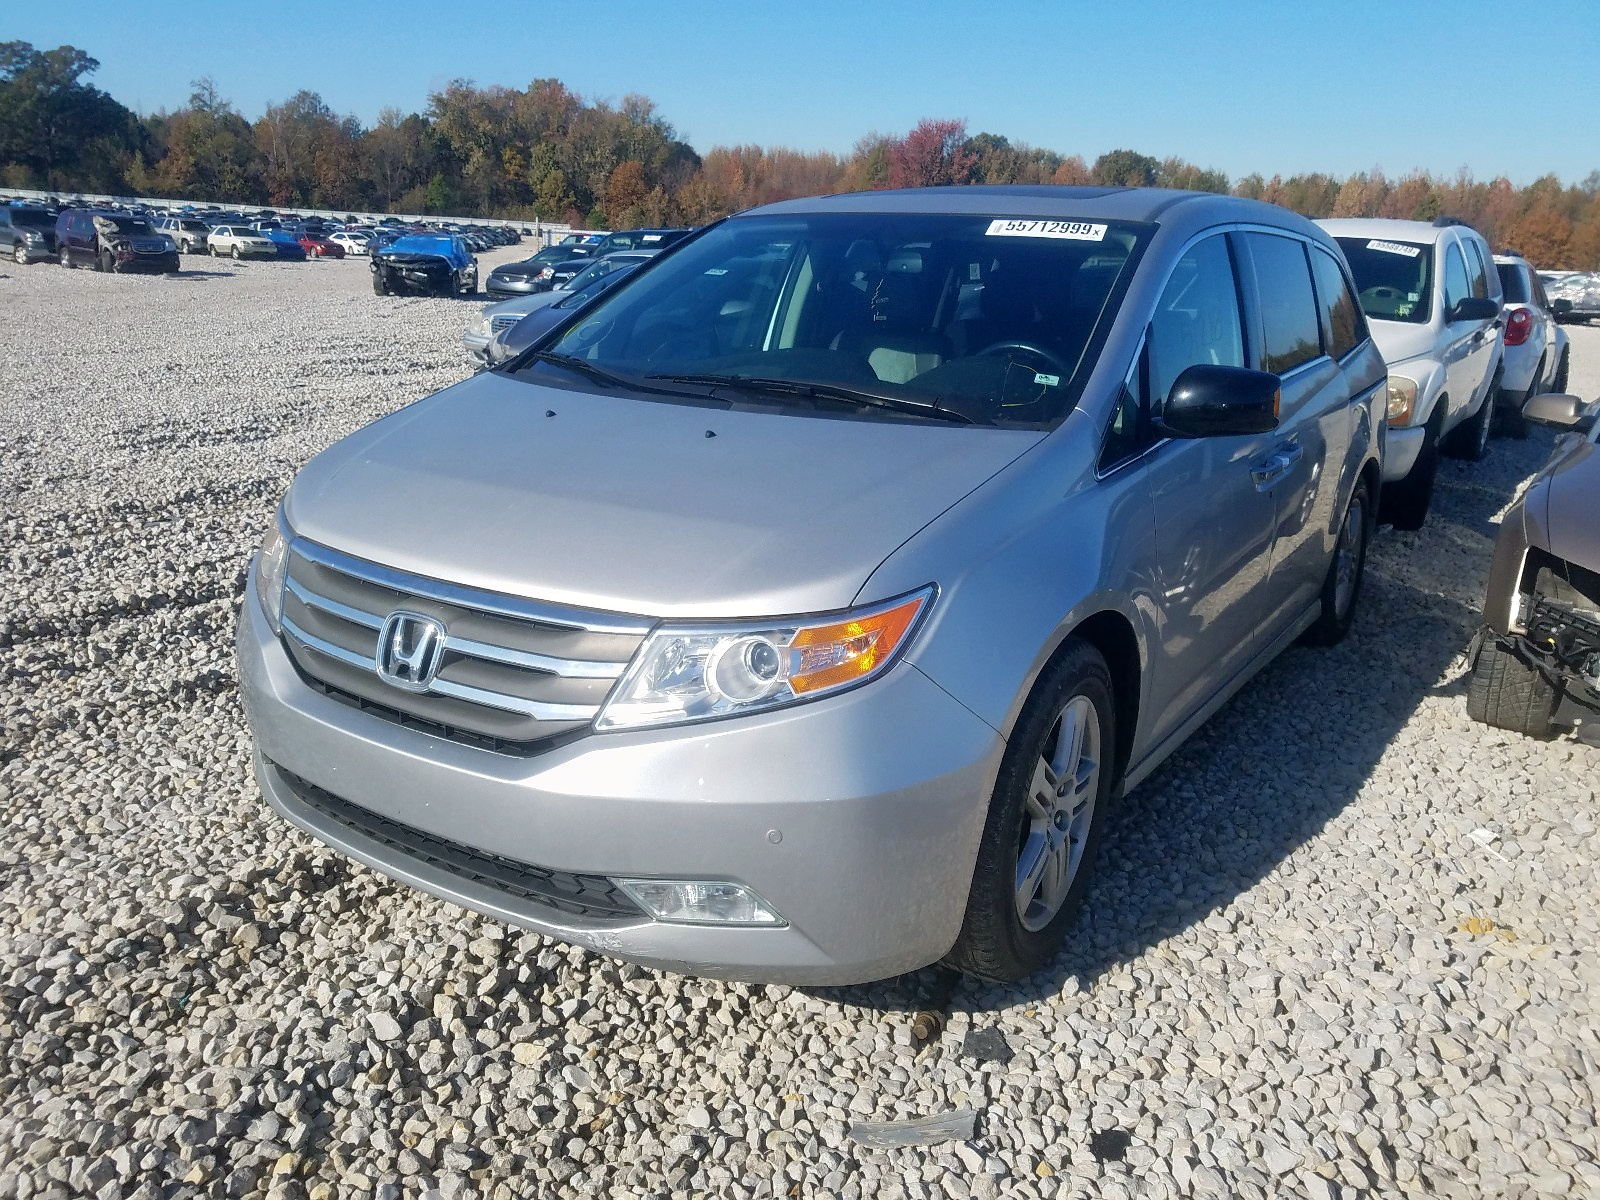 2013 Honda Odyssey To 3.5L Right View